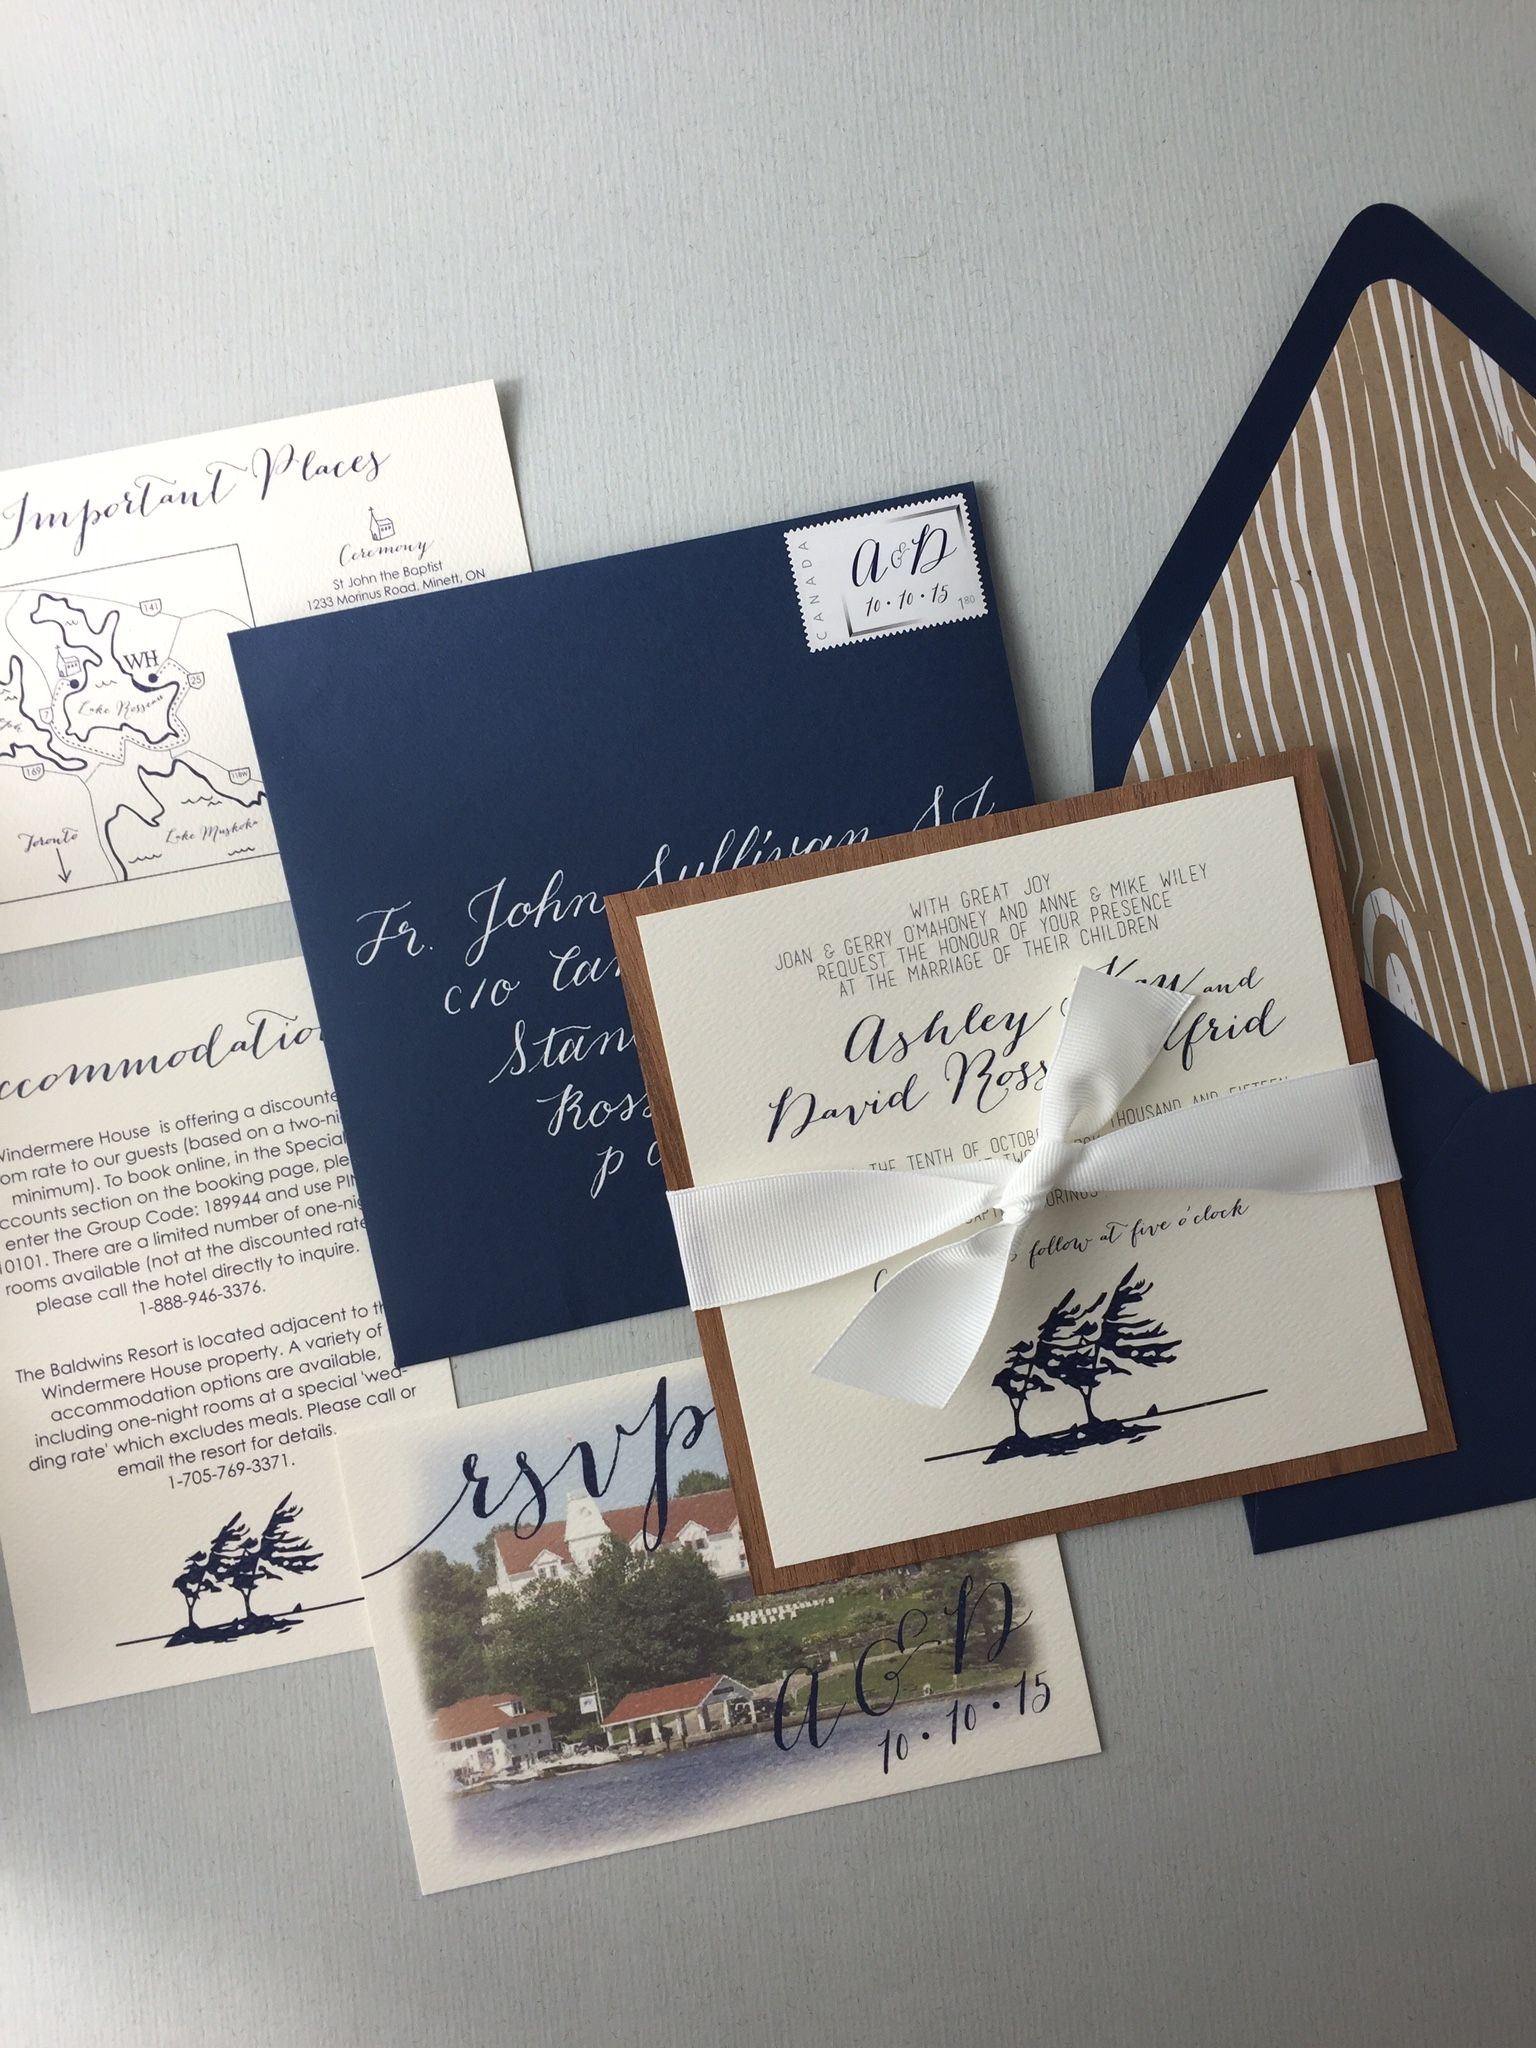 Ashley & Dave's custom wedding invitations